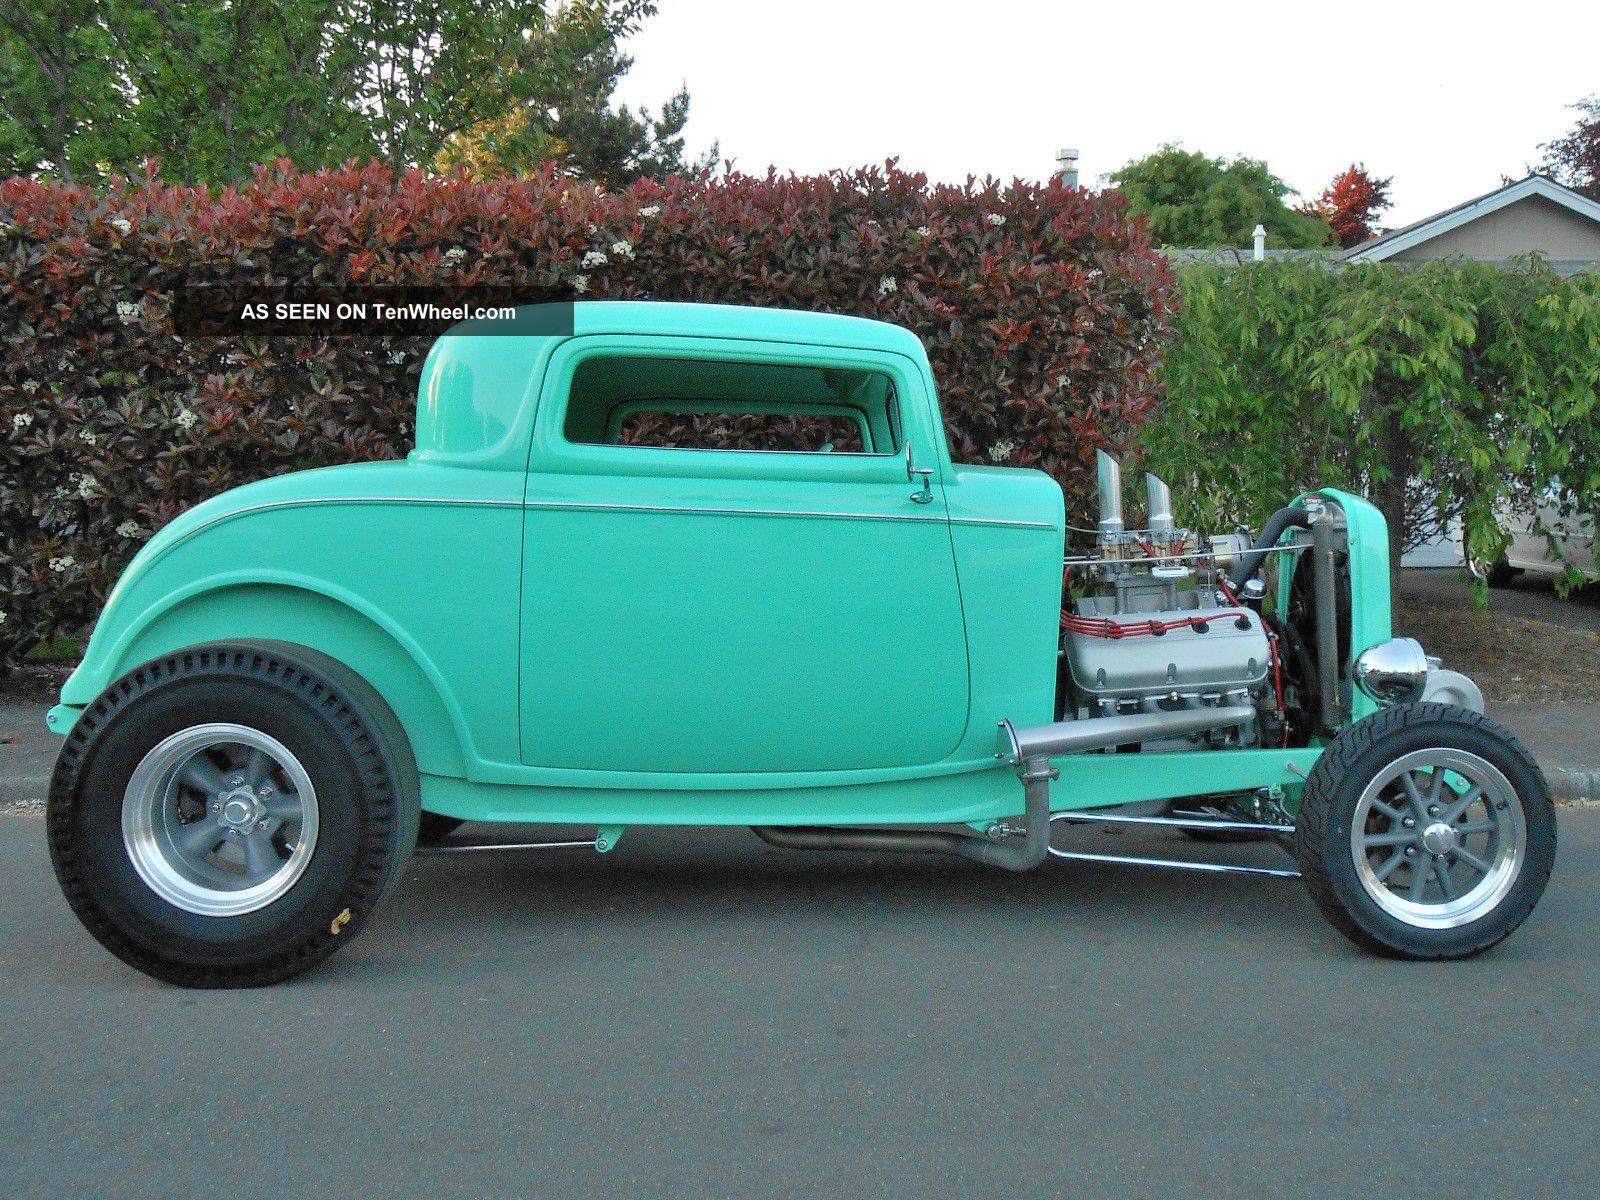 1932 Ford Chopped - 3window - - Hotrod - Hemi - Gasser Other photo